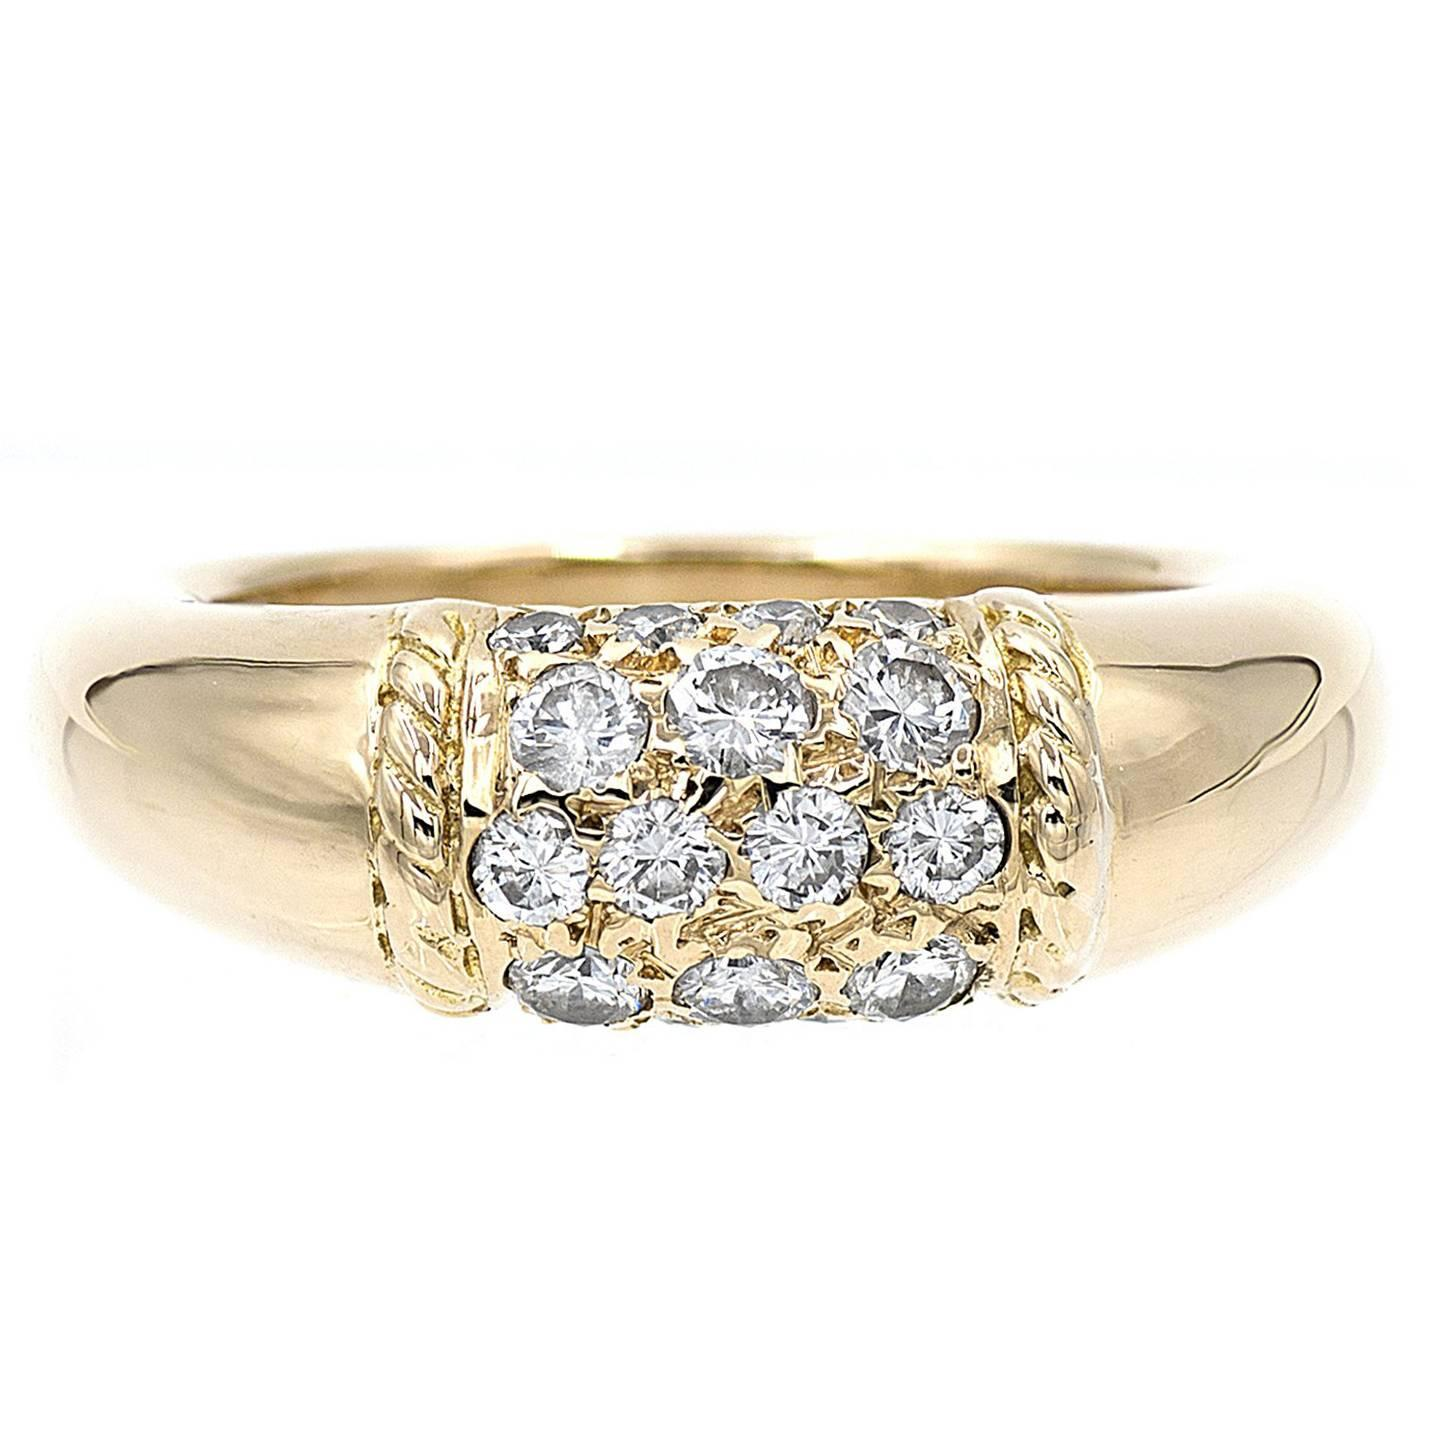 Van Cleef & Arpels Philippine Diamond Dome Yellow Gold Ring